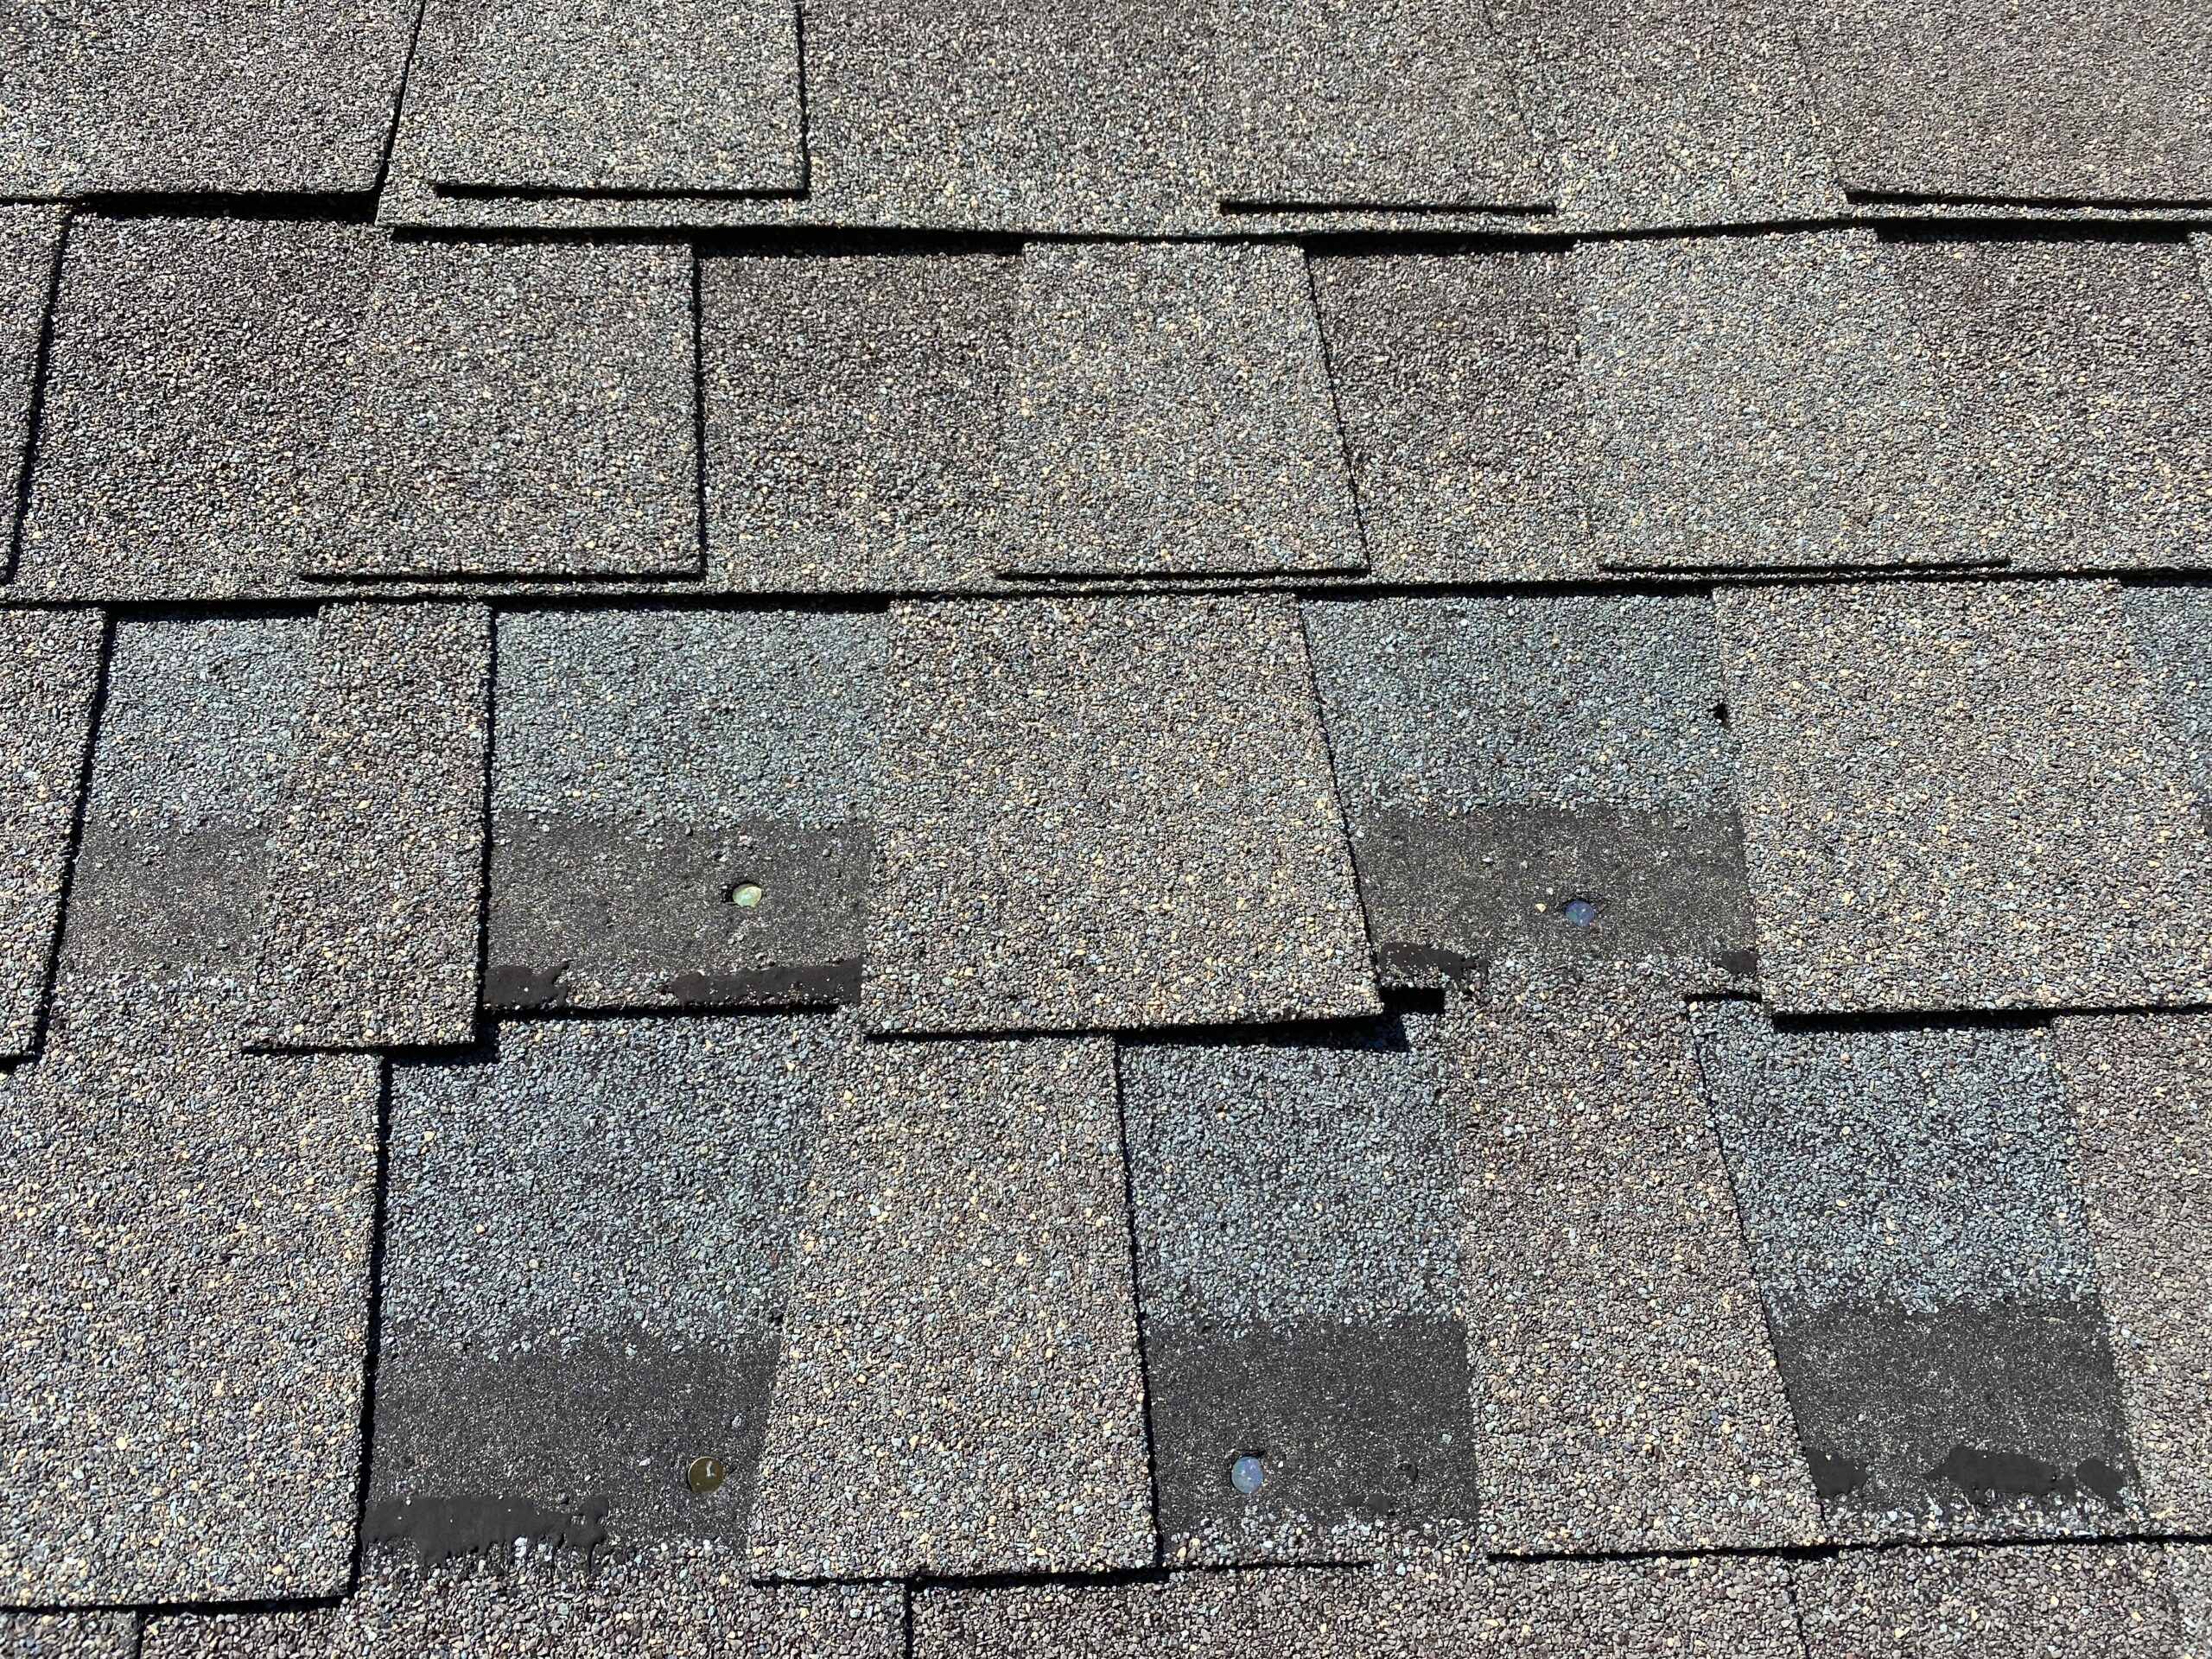 This is a picture of exposed nails on shingles.